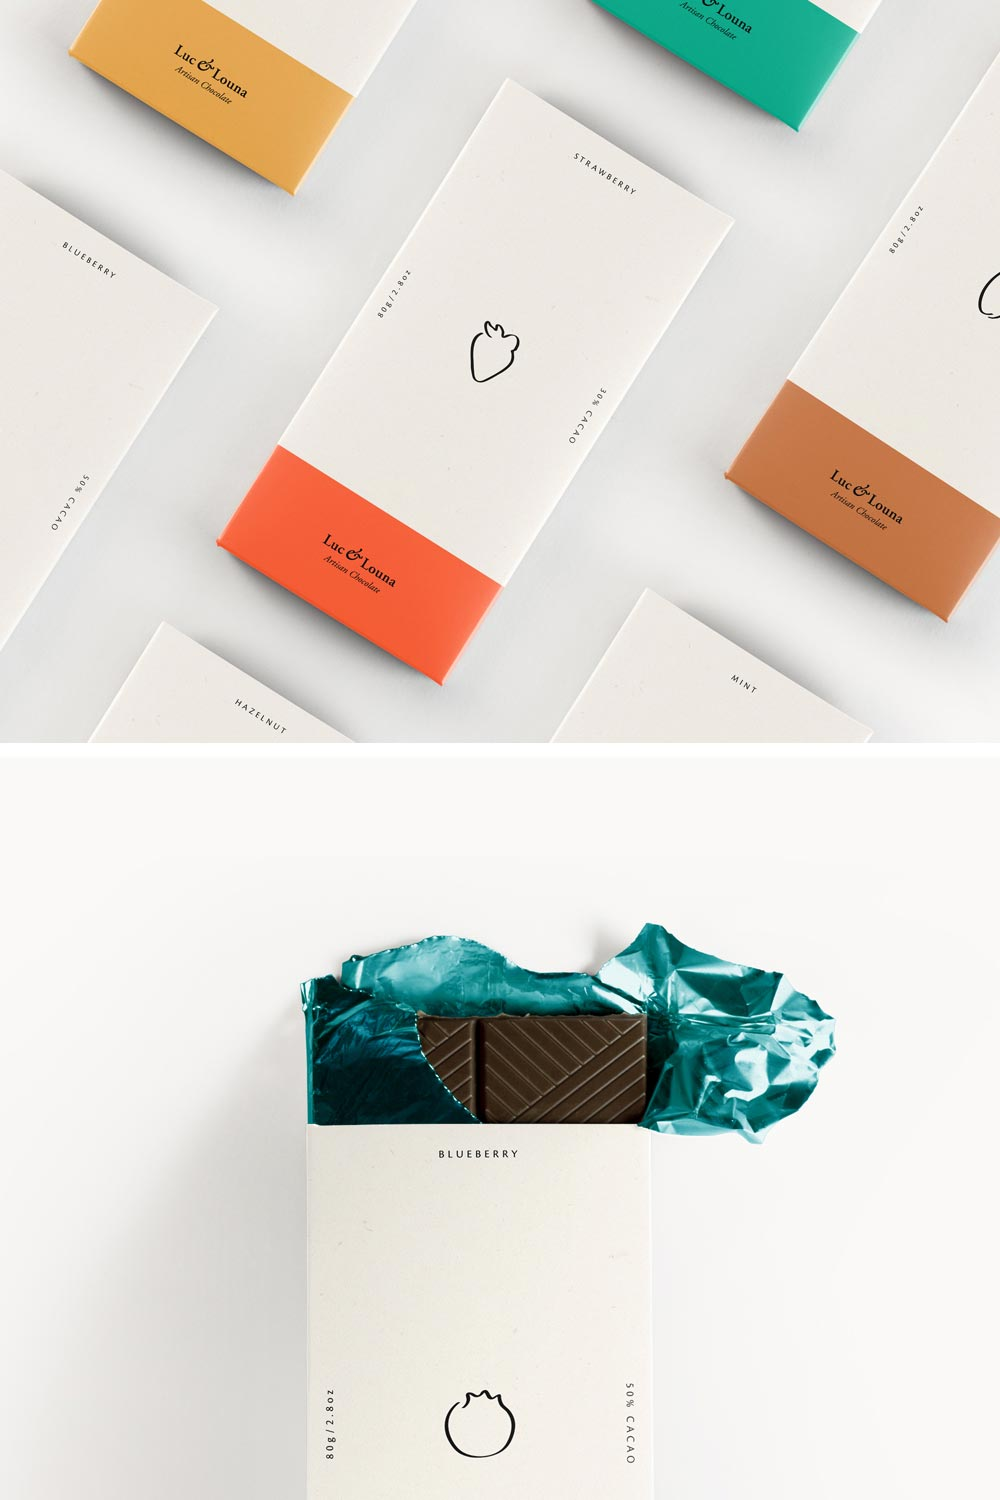 Luc & Louna branding and packaging